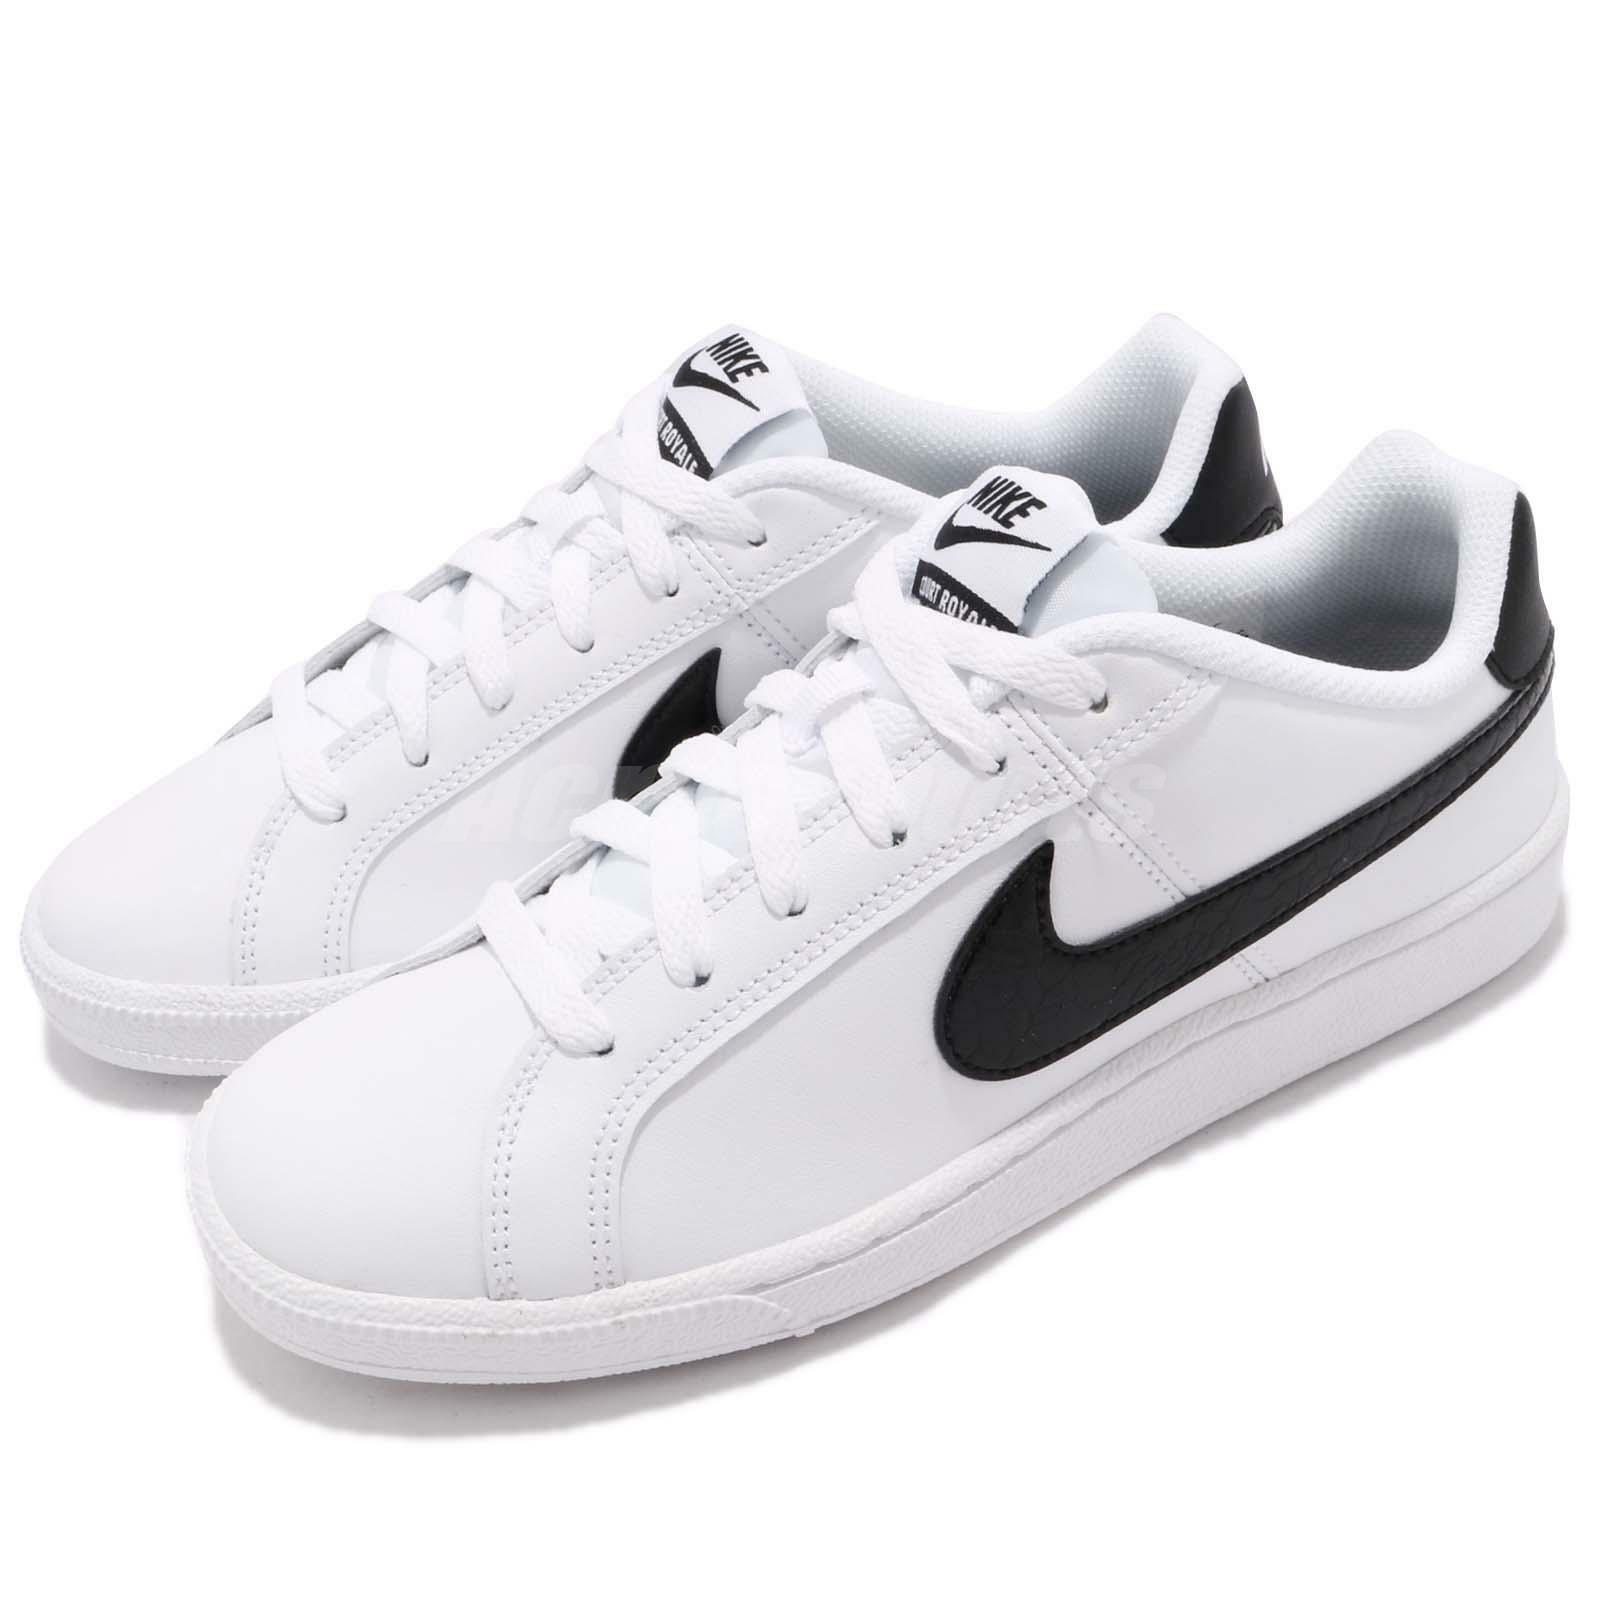 Wmns Nike Court Royale Low White Black Women Shoes Sneakers  749867-111